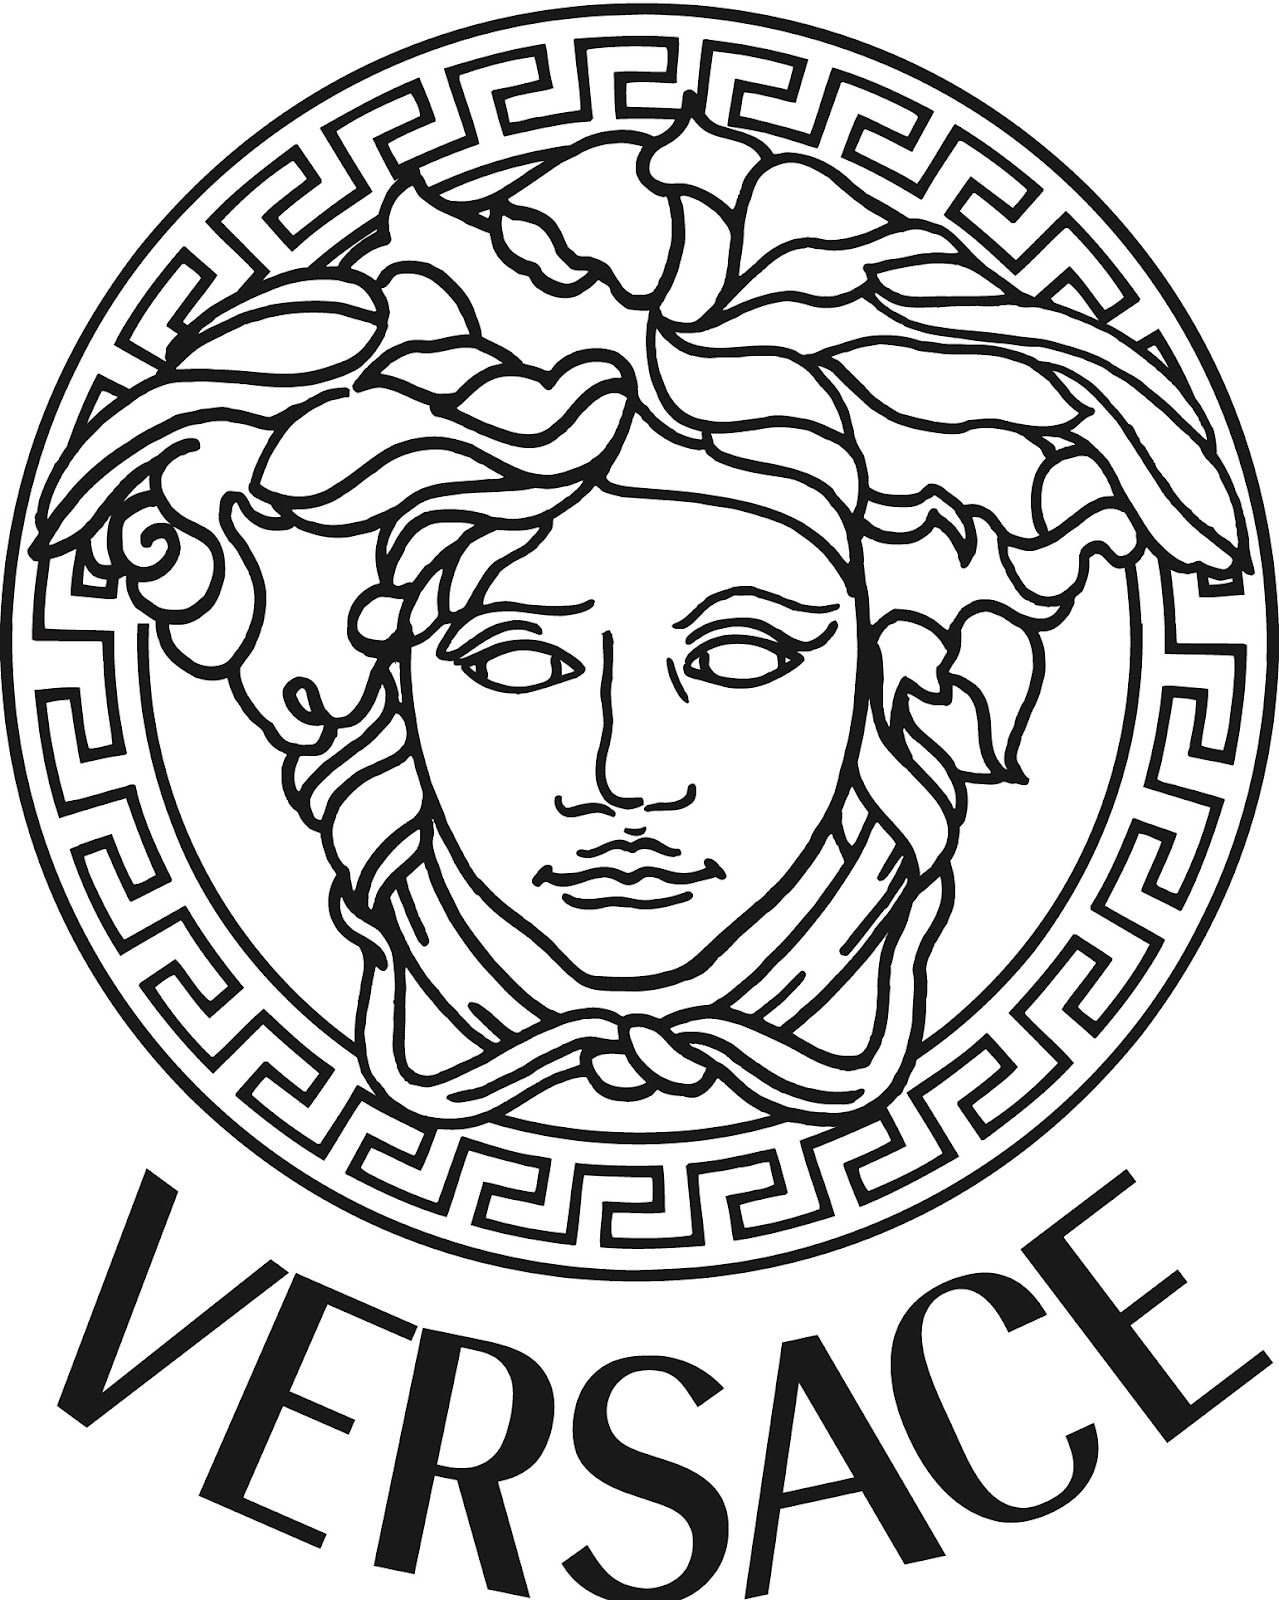 june 2012 sunglass replacement lenses Ray-Ban 2132 Polarized here is a list of versace models that have replacement lenses available ve 2021 ve 2040 ve 2041 ve 2054 ve 2071 ve 2075 ve 2086 ve 2087 b